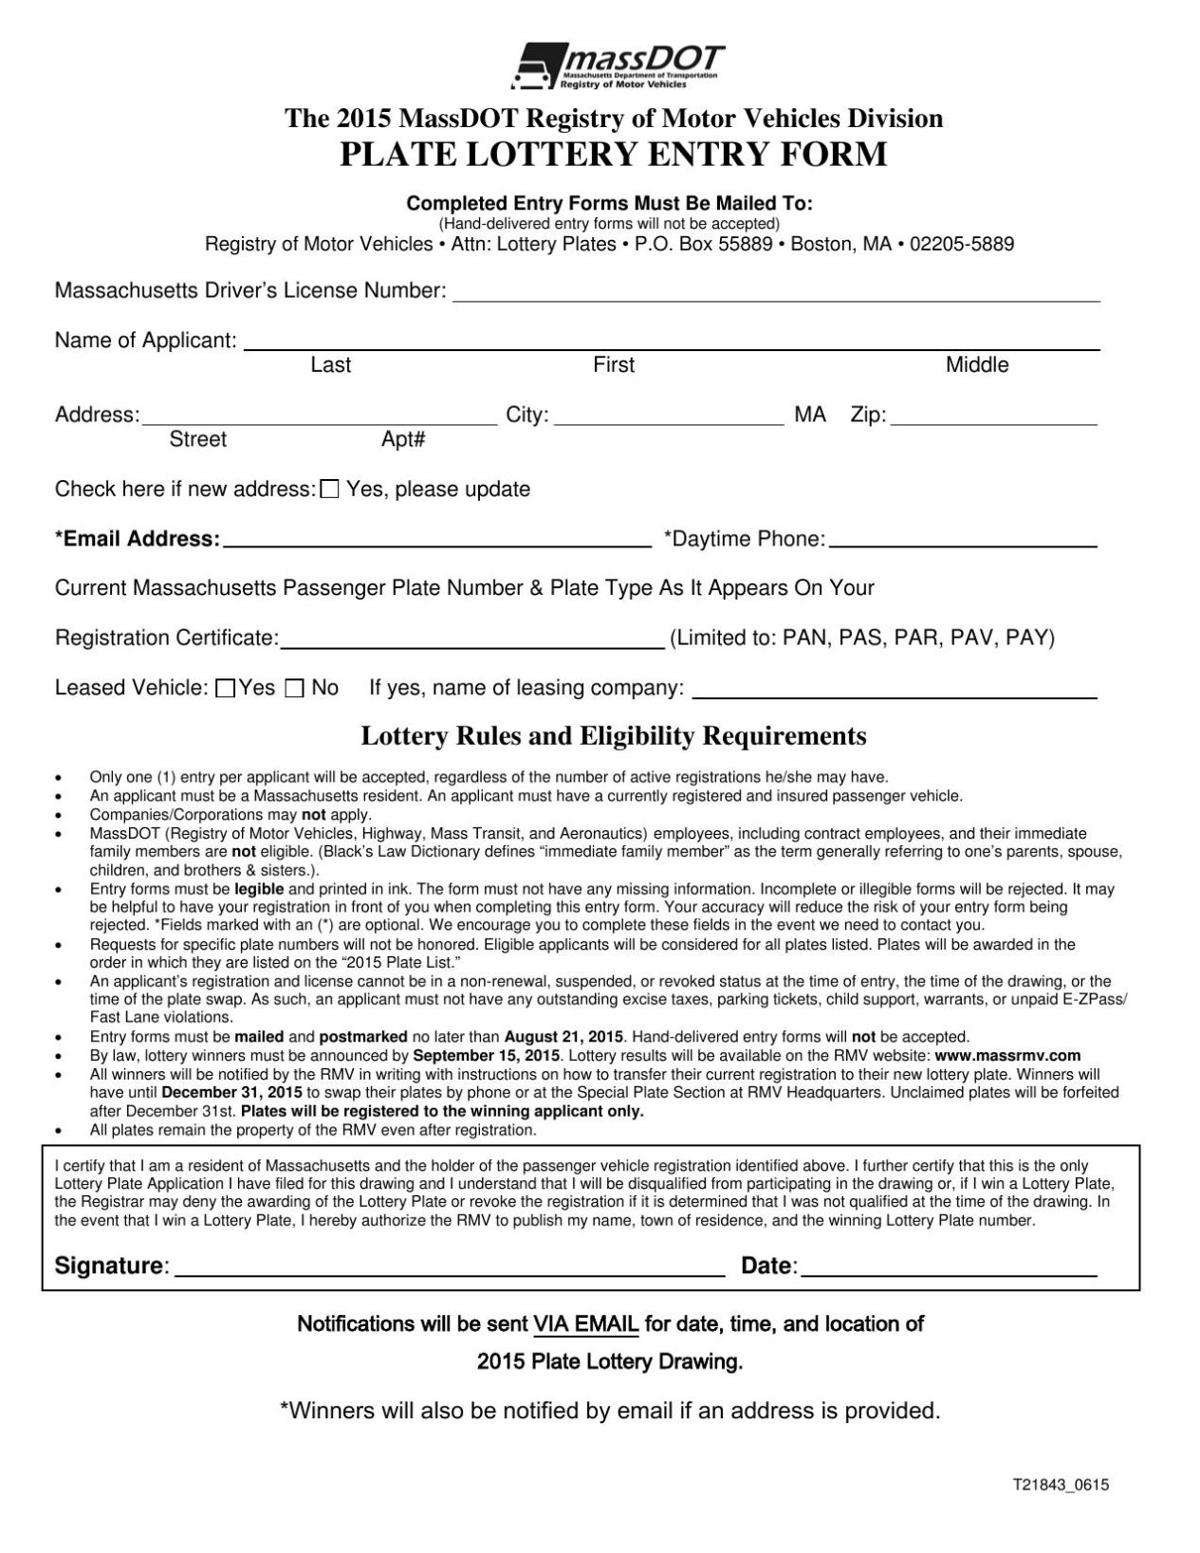 he 2015 MassDOT Registry of Motor Vehicles Division Plate Lottery Entry Form